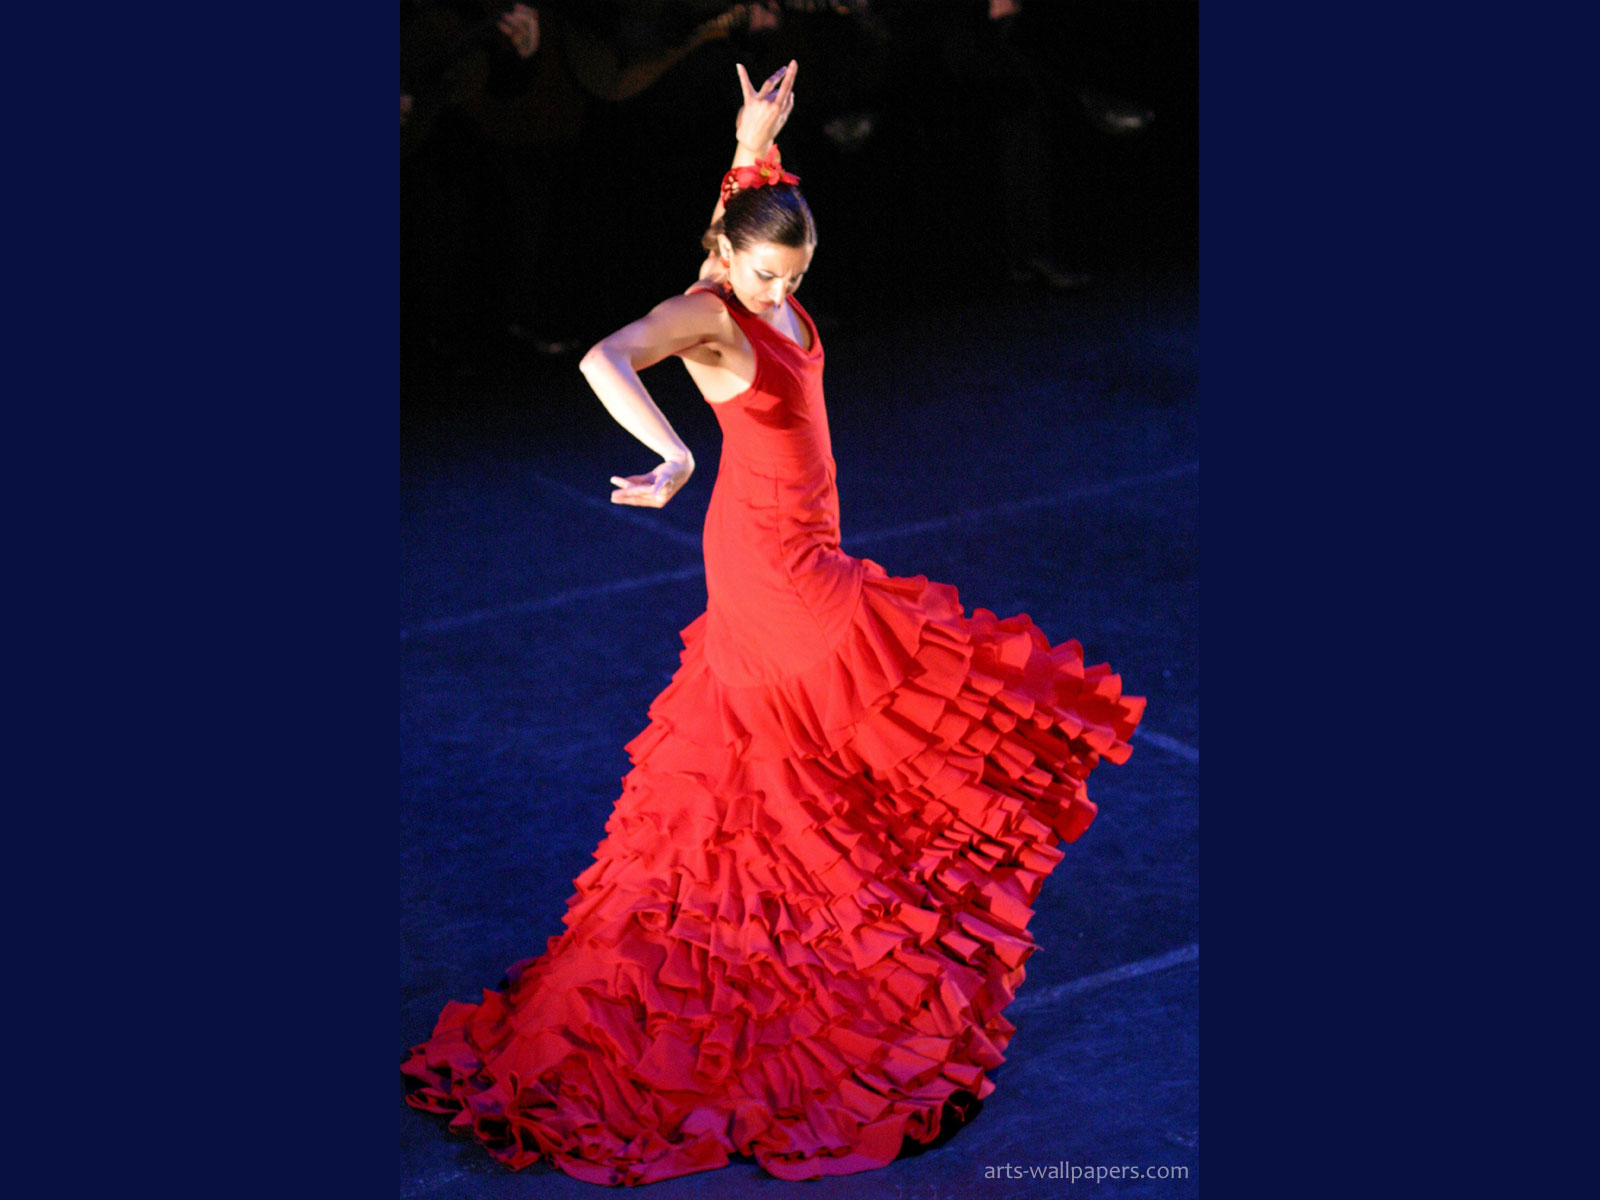 Flamenco, it doesn't get any more Spanish | The El Guarda Posts